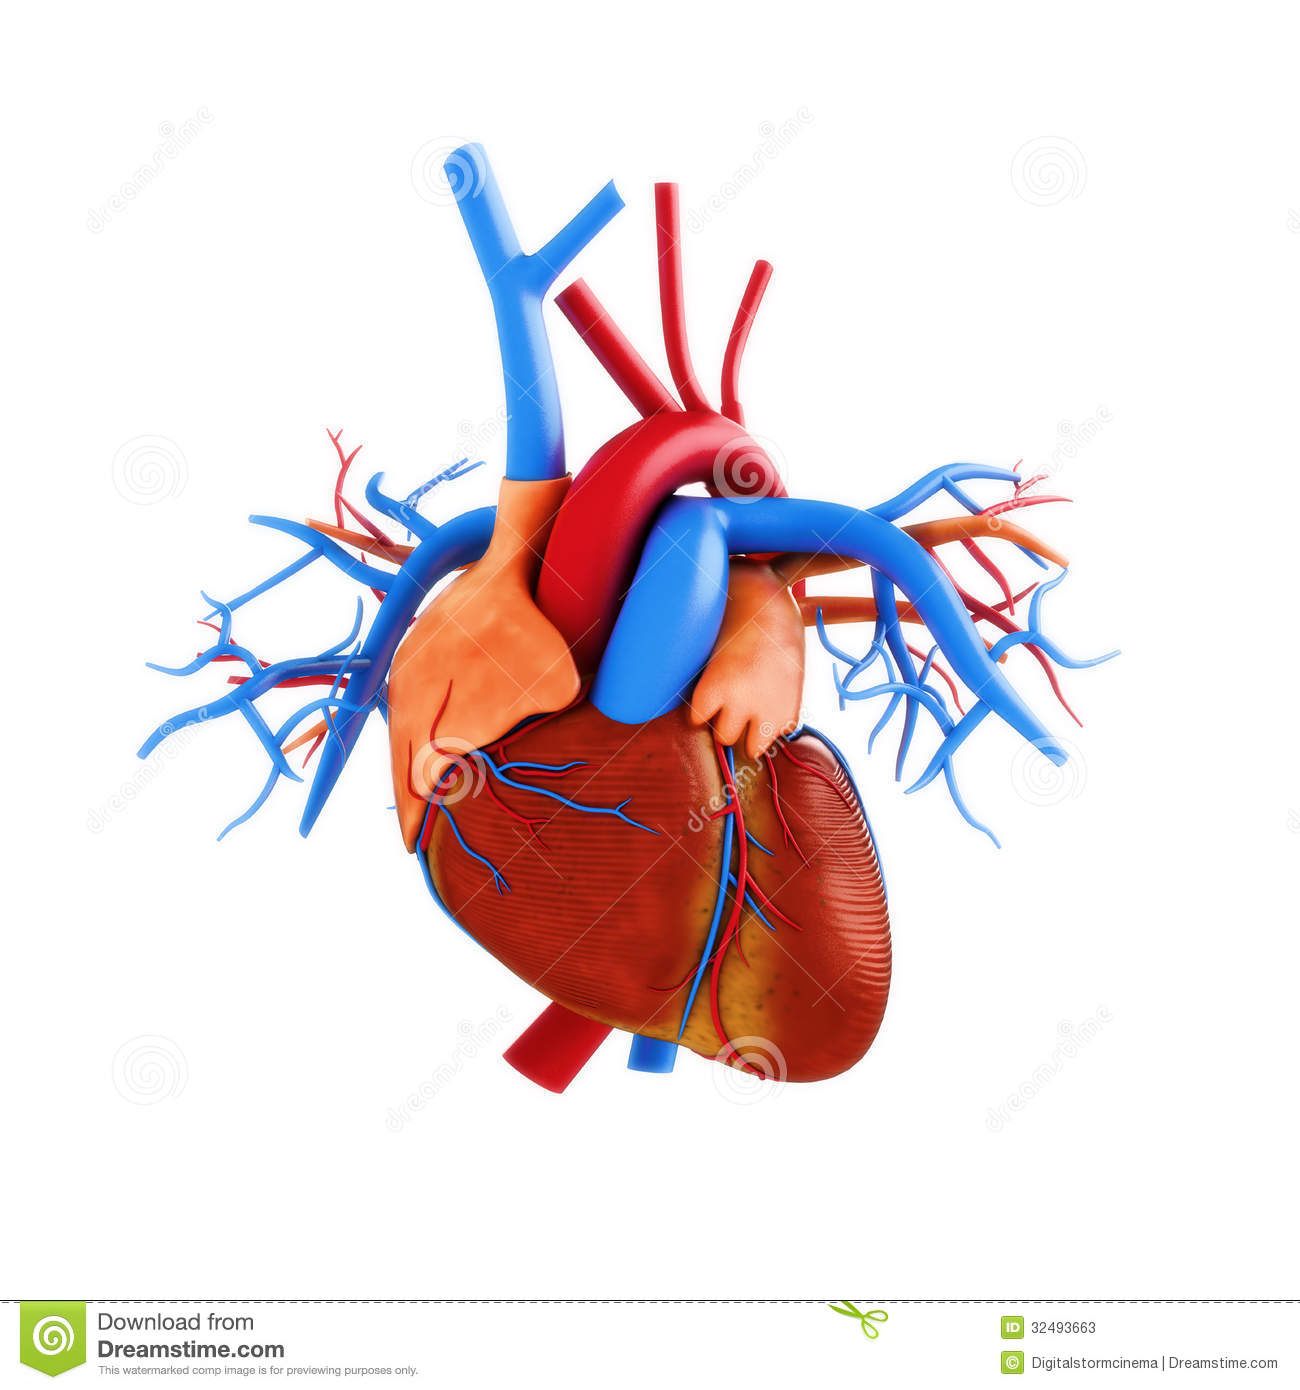 human heart anatomy illustration stock illustration - image: 62821929, Muscles